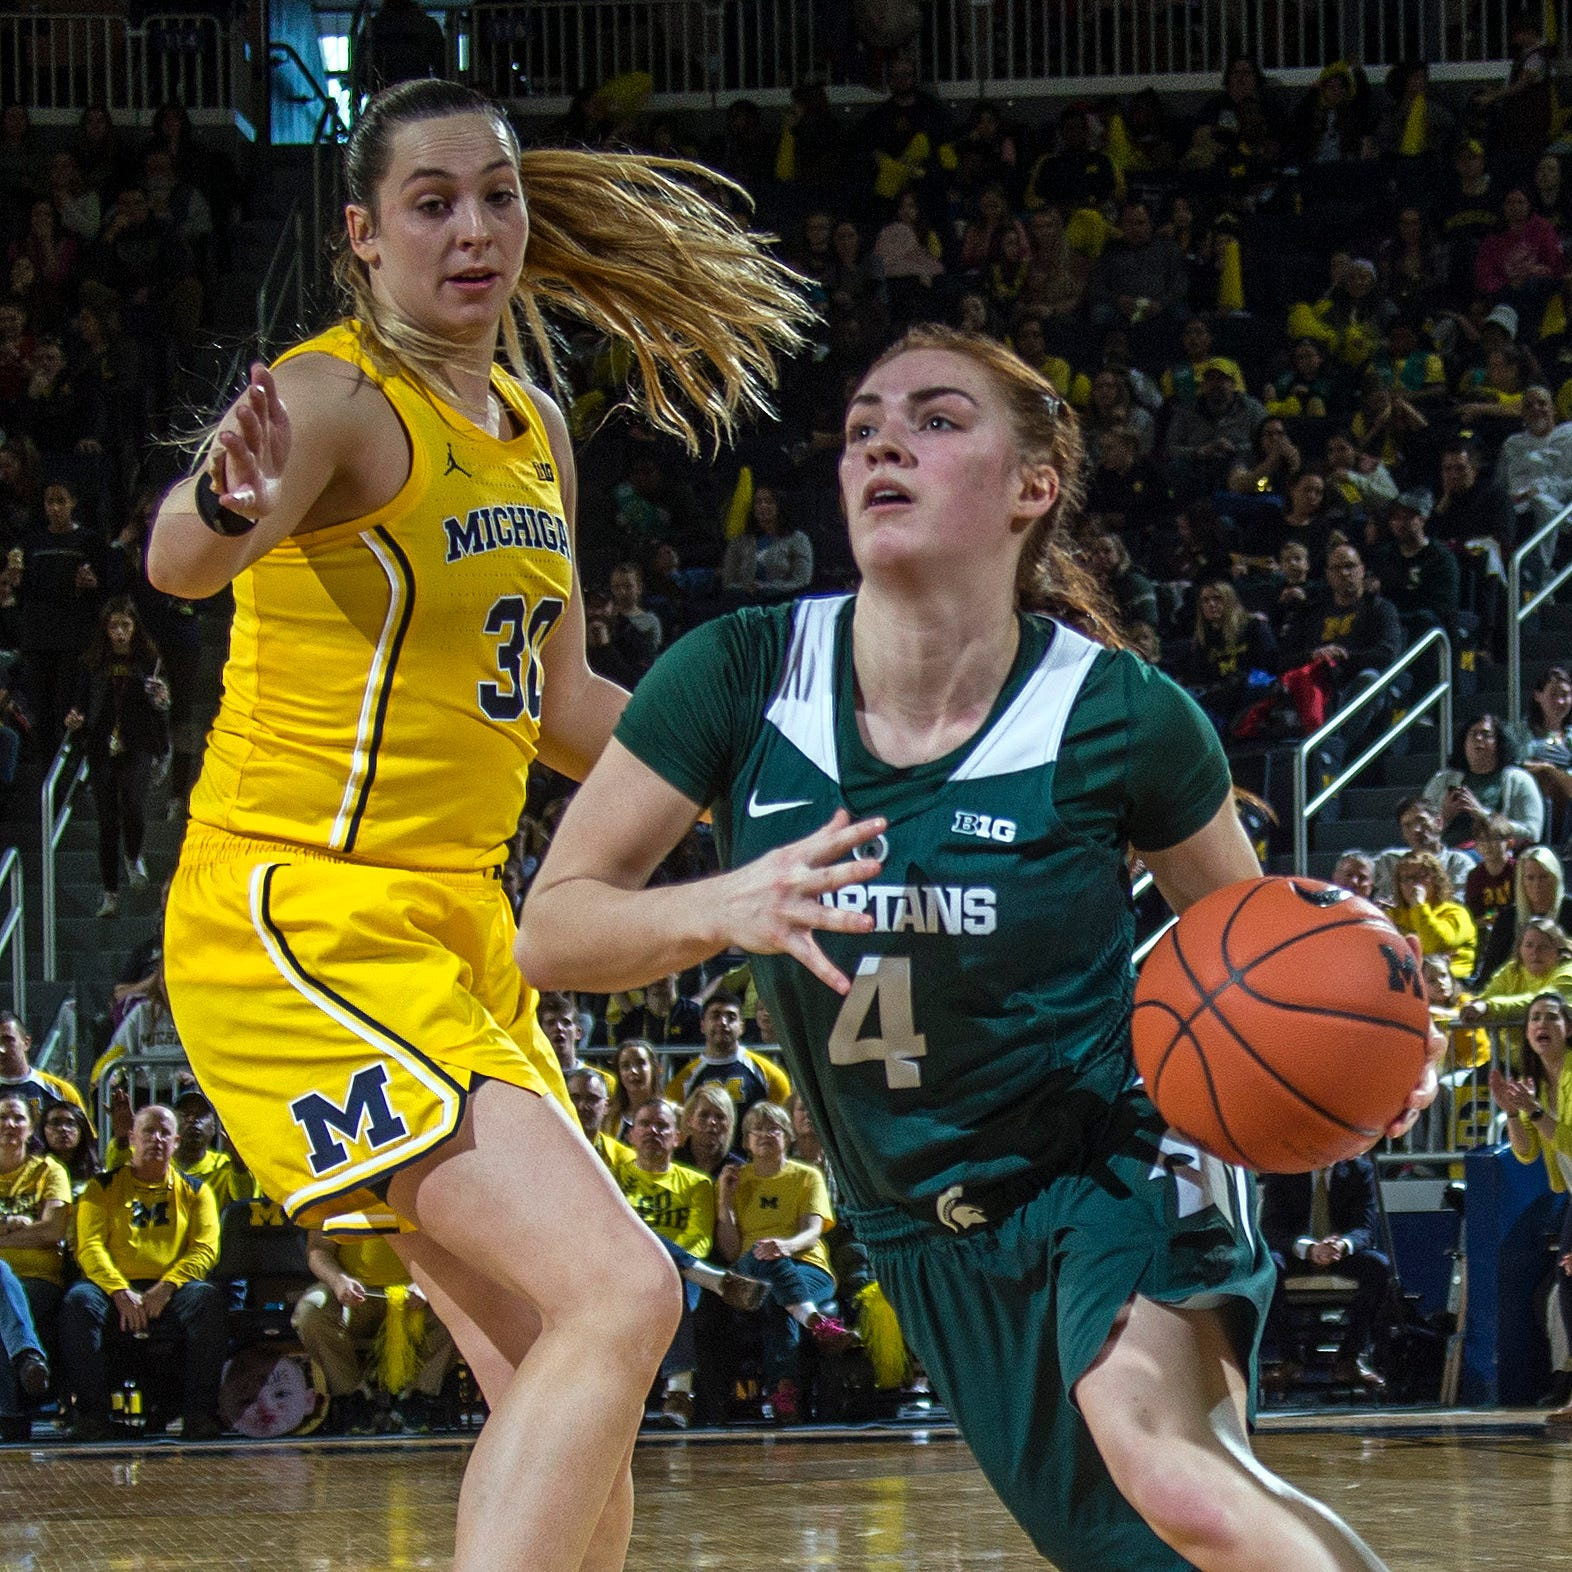 NCAA women's tournament: Michigan in, Michigan State vs. CMU at Notre Dame